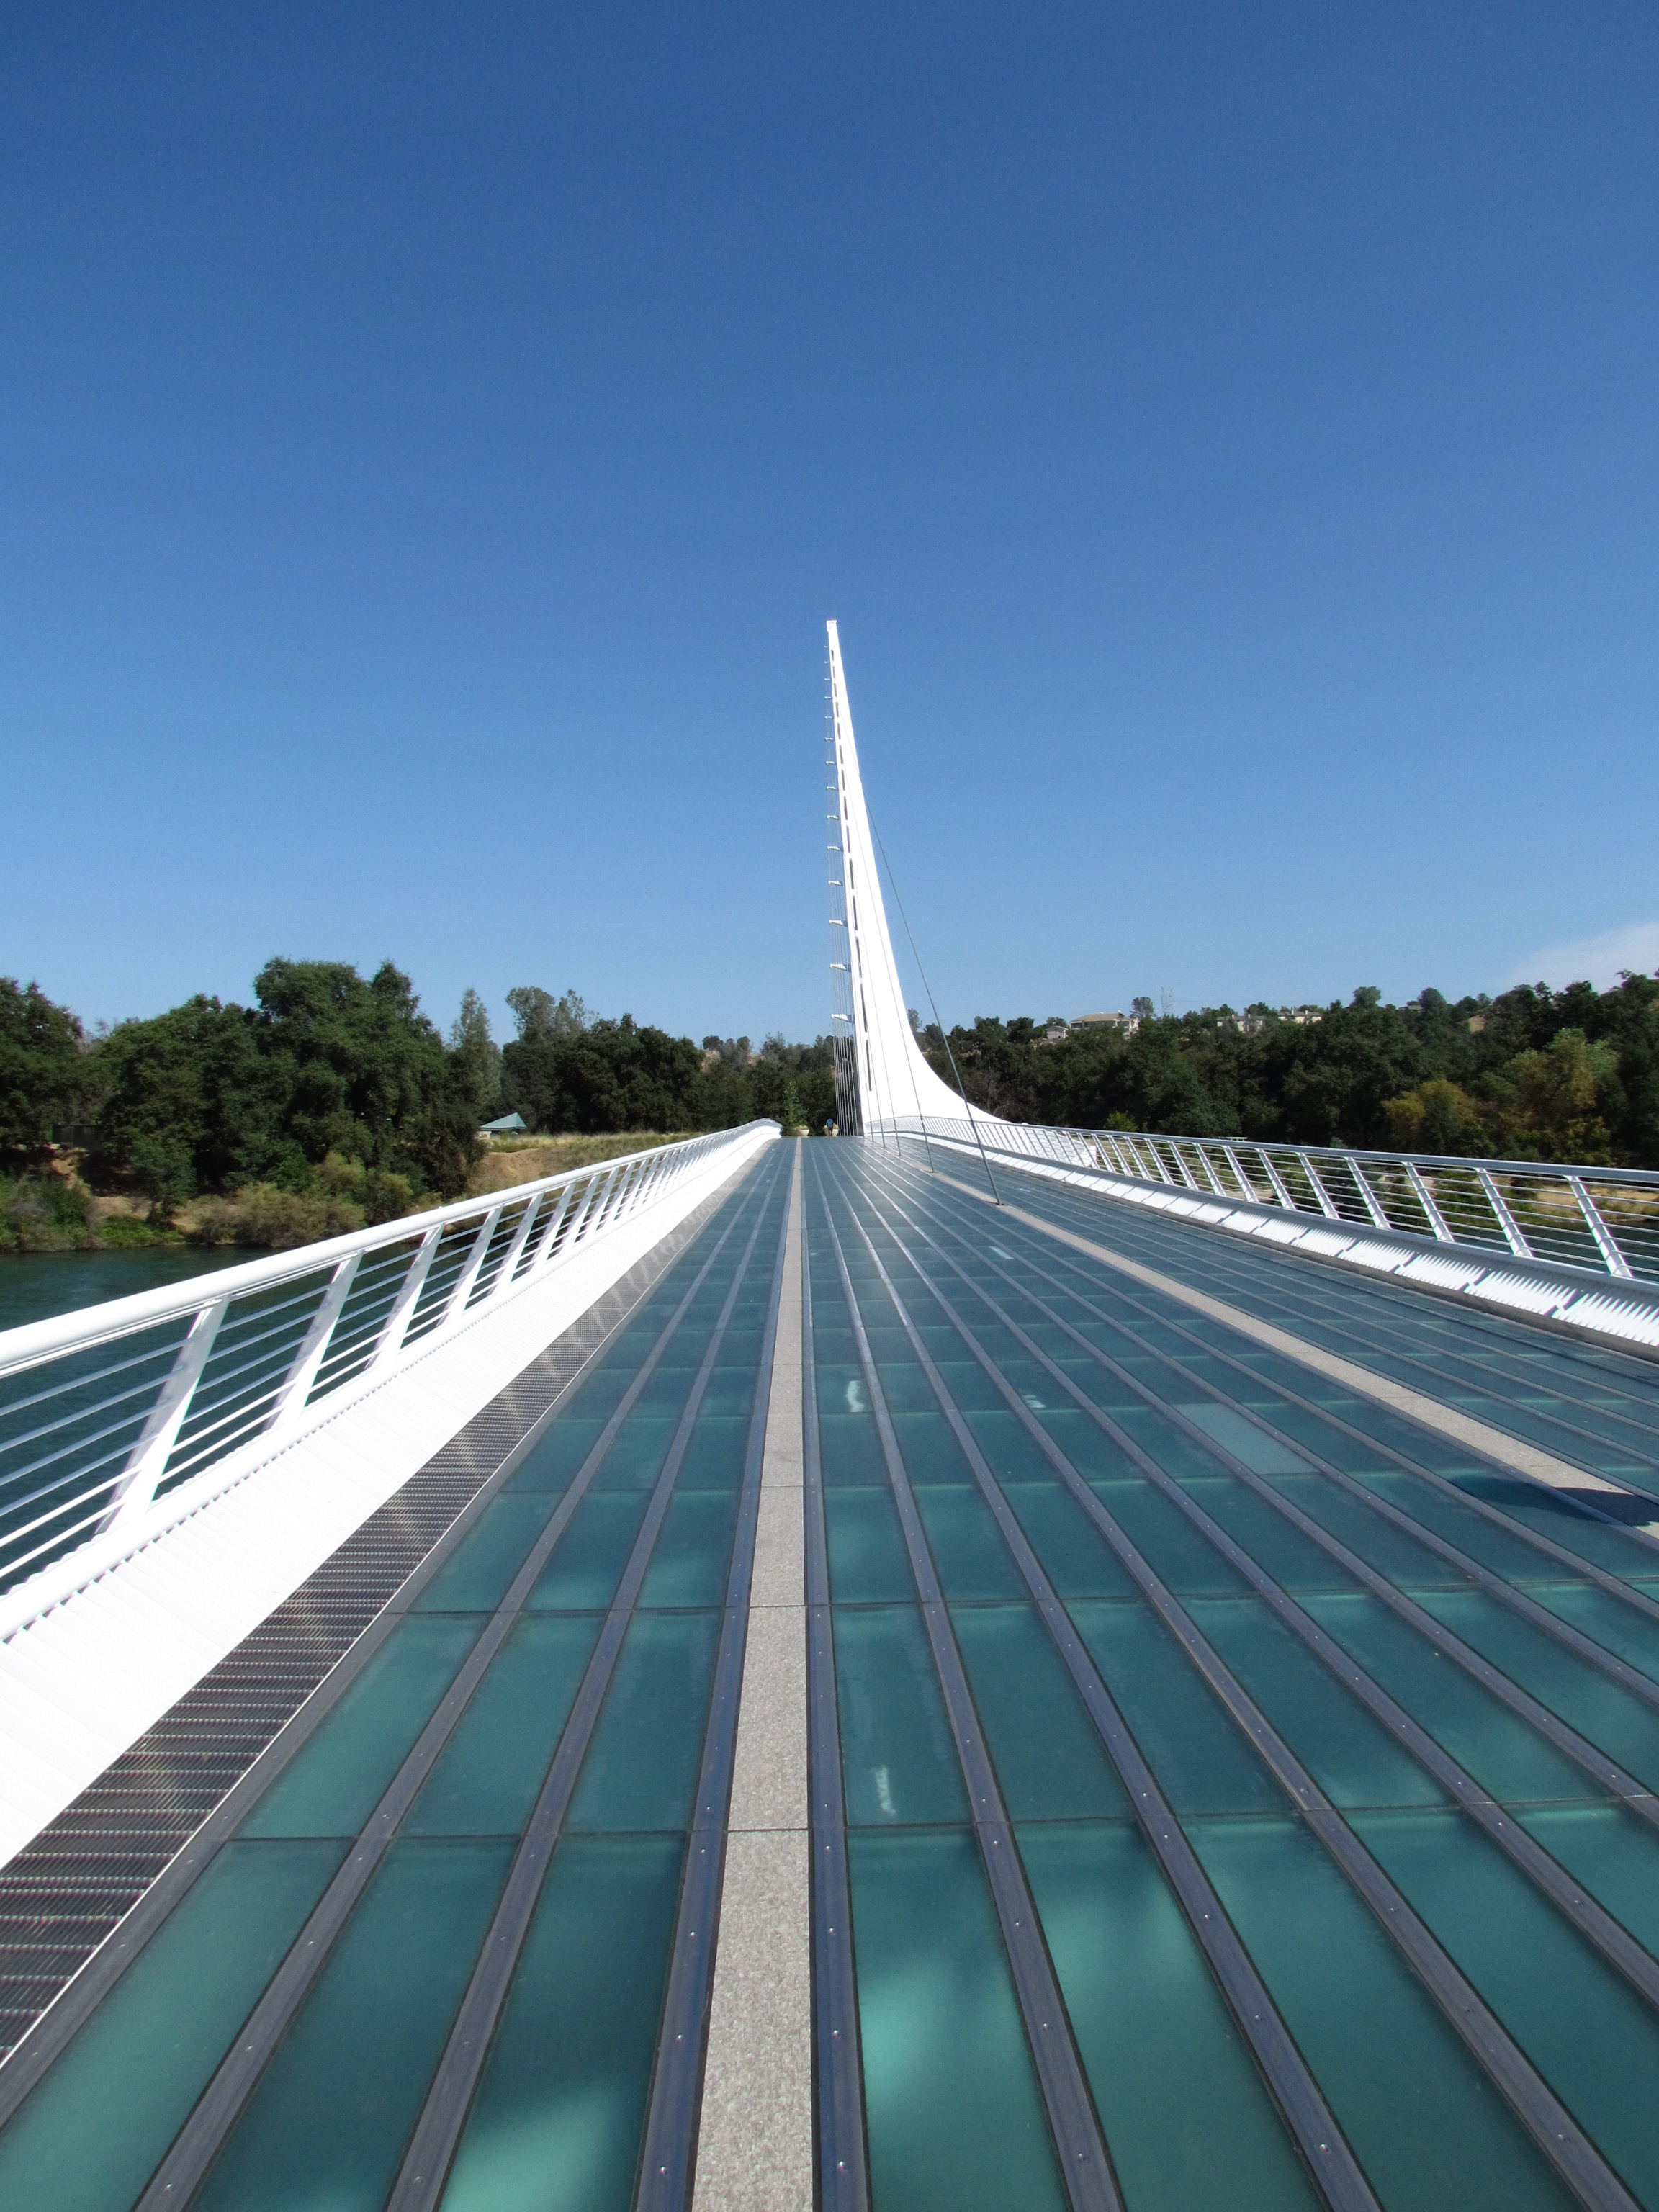 The bridge was designed by architect Santiago Calatrava. He described it as a goose in flight. The bridge was completed in 2004 and took 11 years to build. It cost 24 million dollars. It is 720 feet long and 23 feet wide. The bridge weighs 1600 tons, the same as 400 elephants. Although the bridge ca...